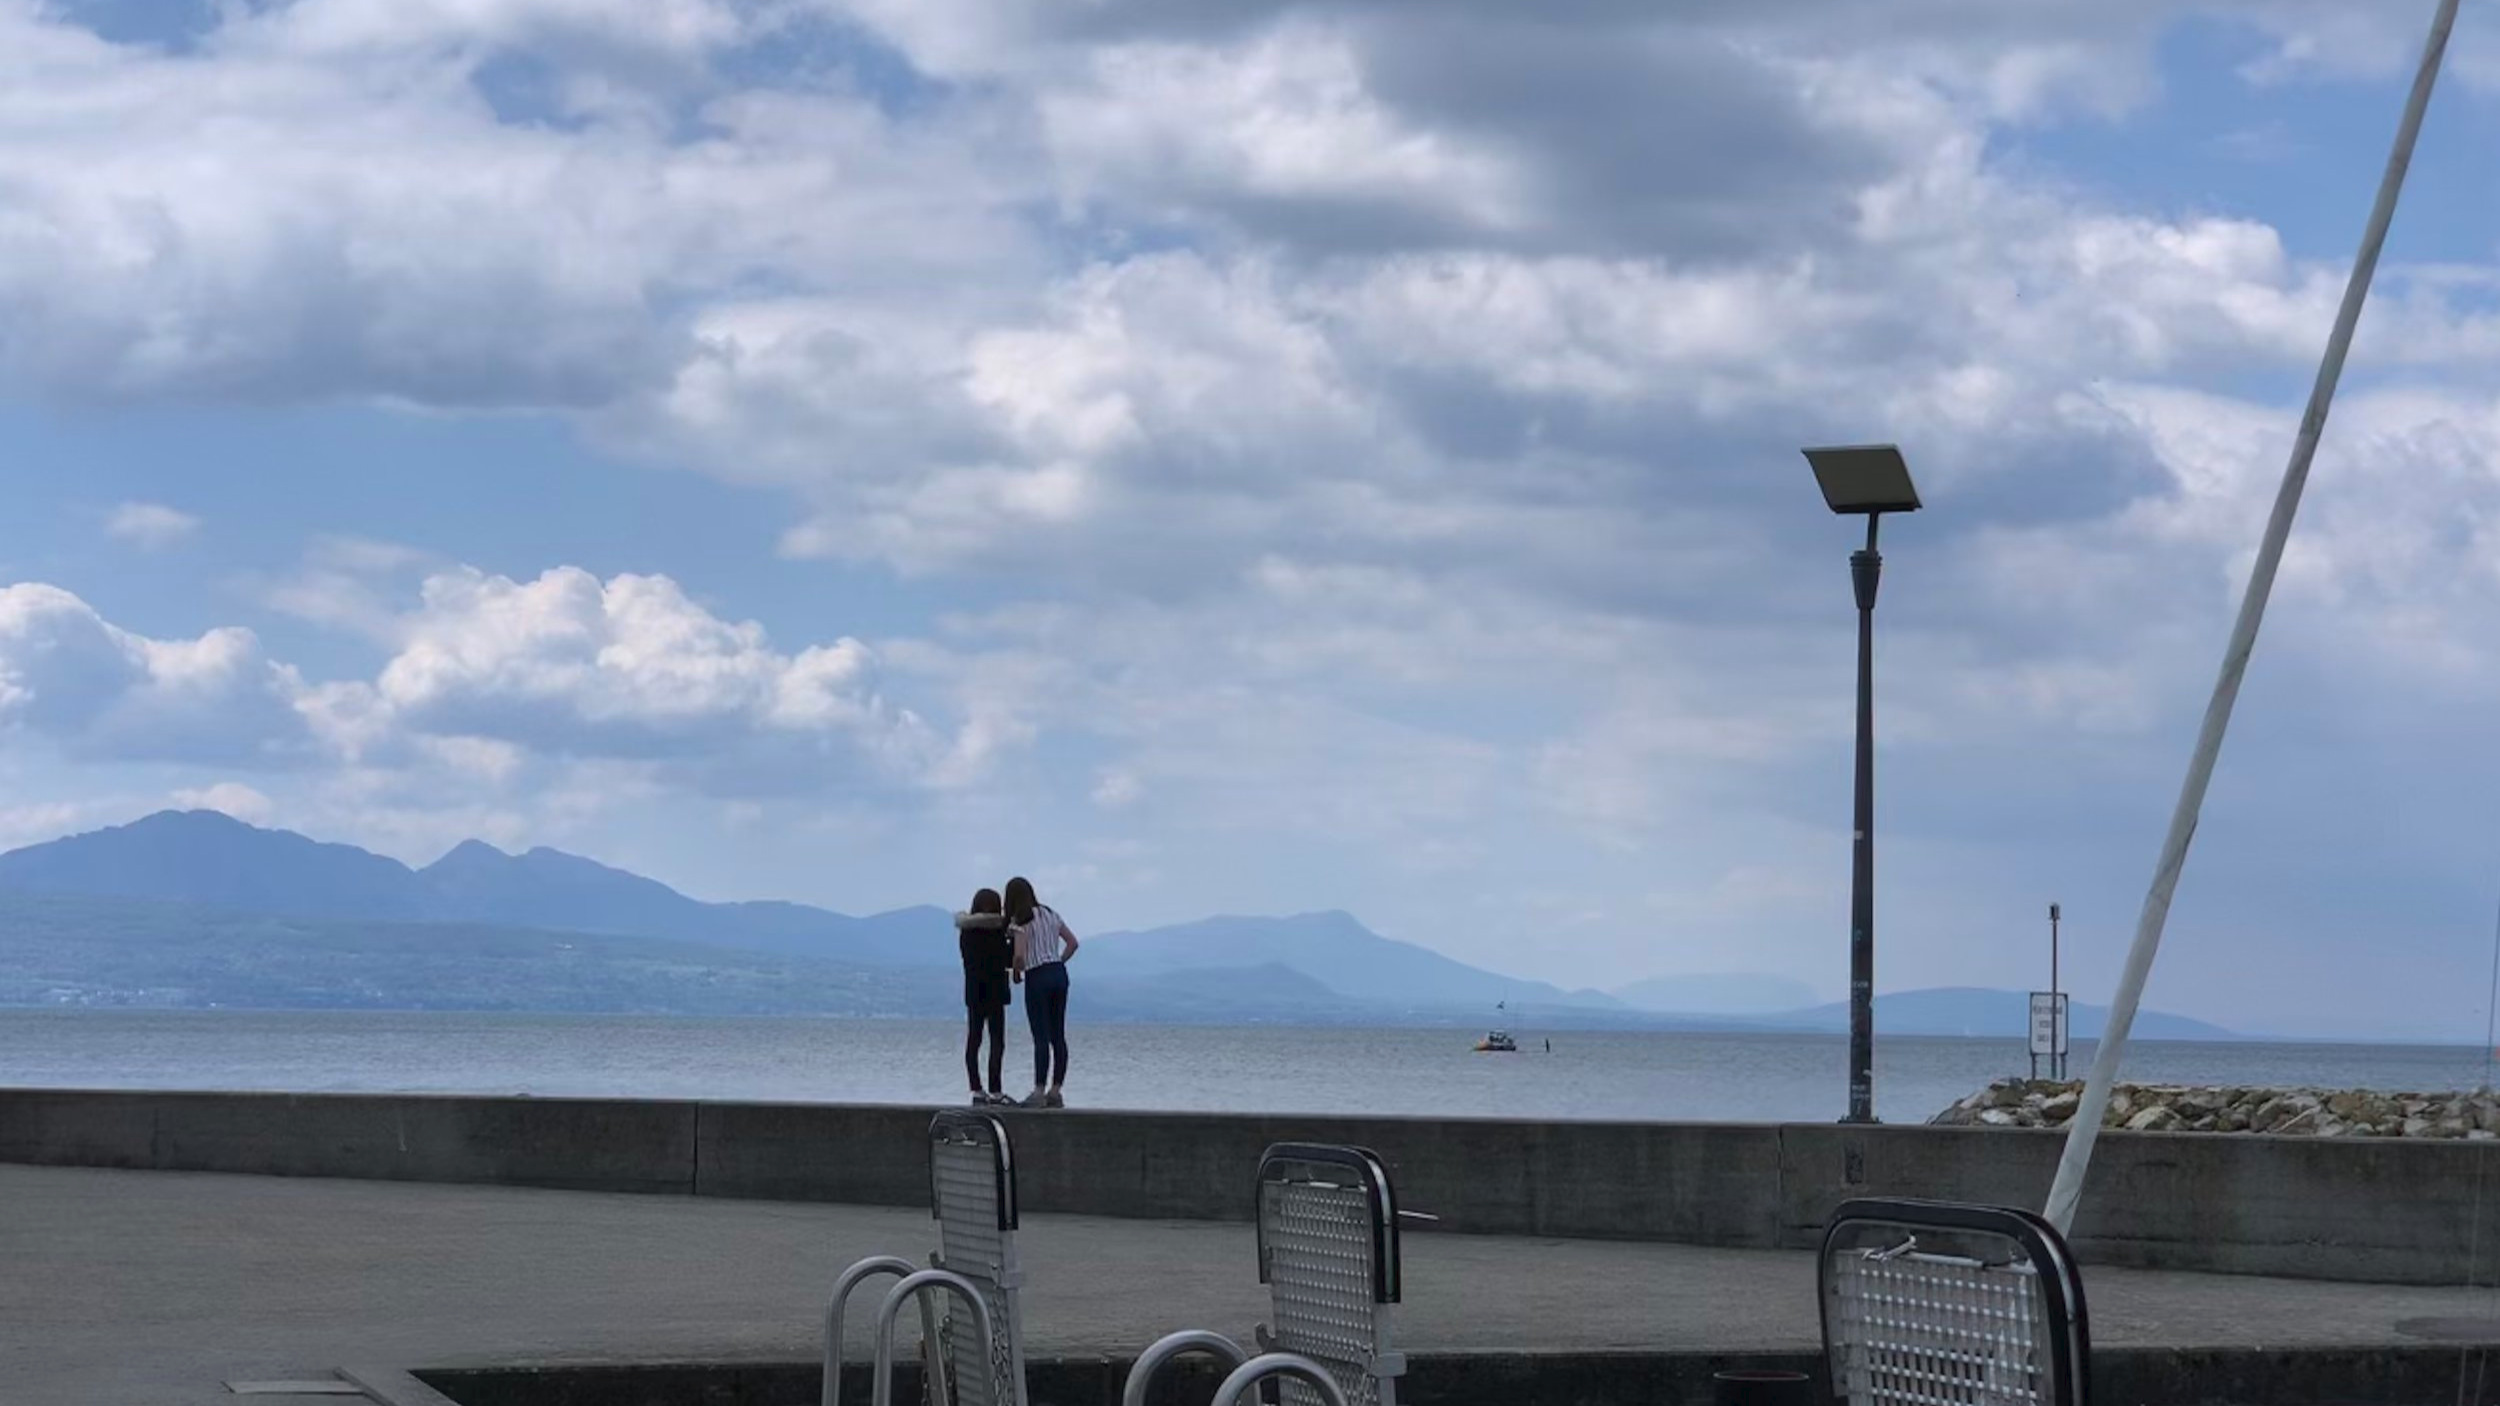 Two friends looking at Lake Geneva. Ouchy, Lausanne, Switzerland. May 12, 2019.